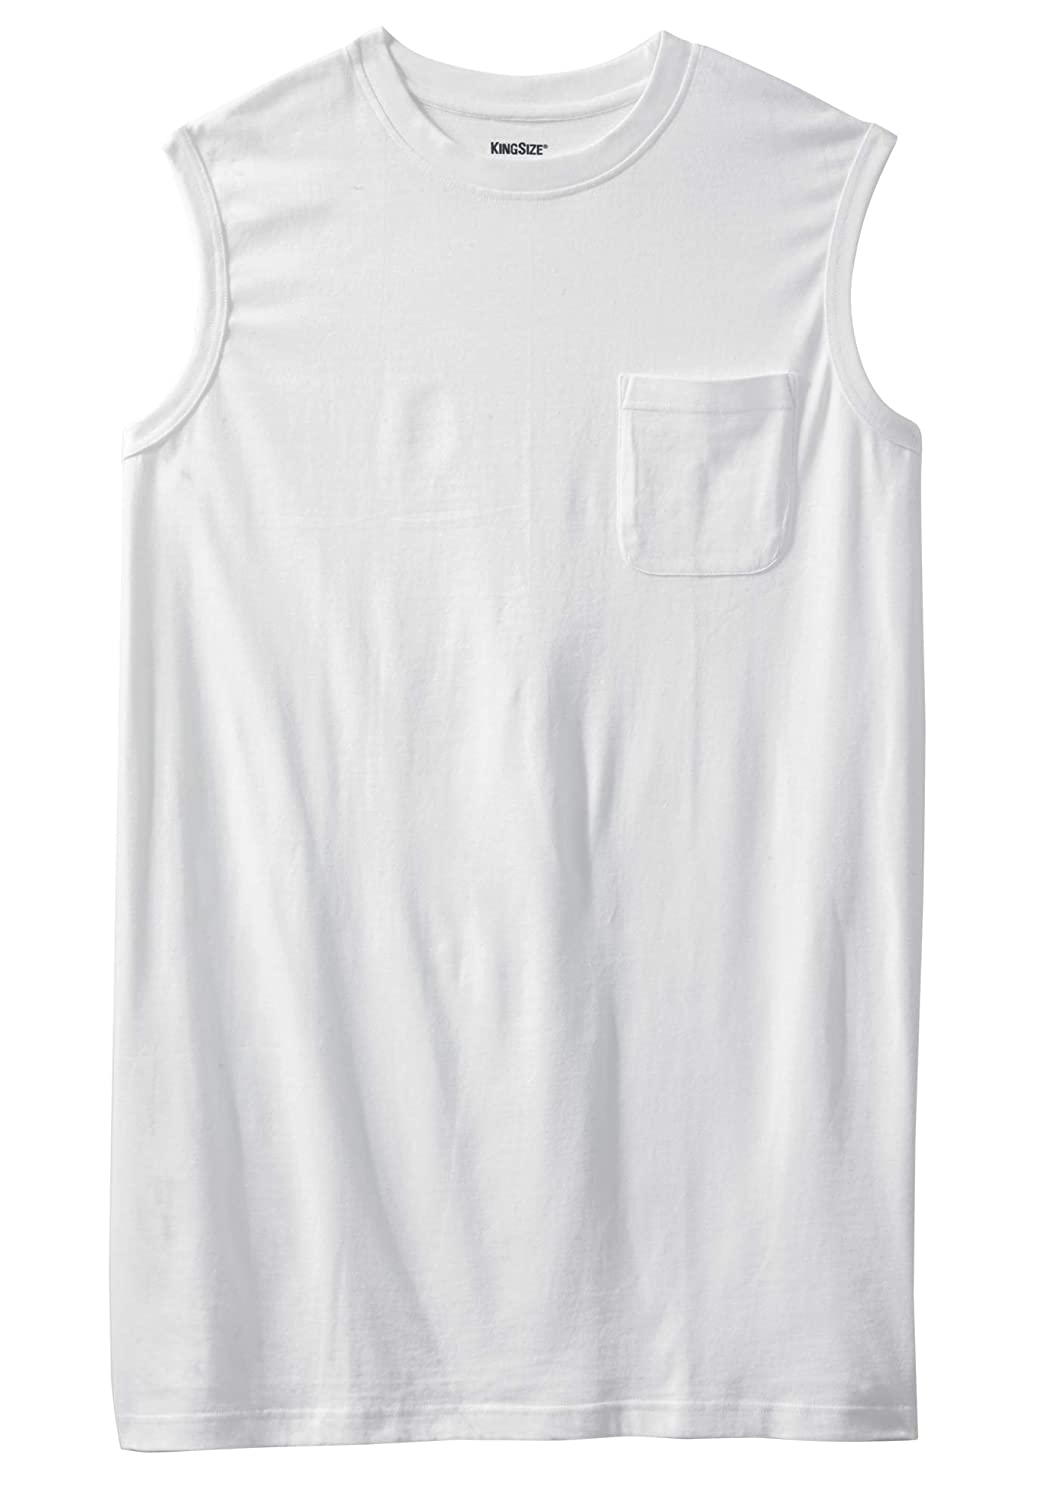 KingSize Mens Big /& Tall Longer-Length Lightweight Muscle Tee